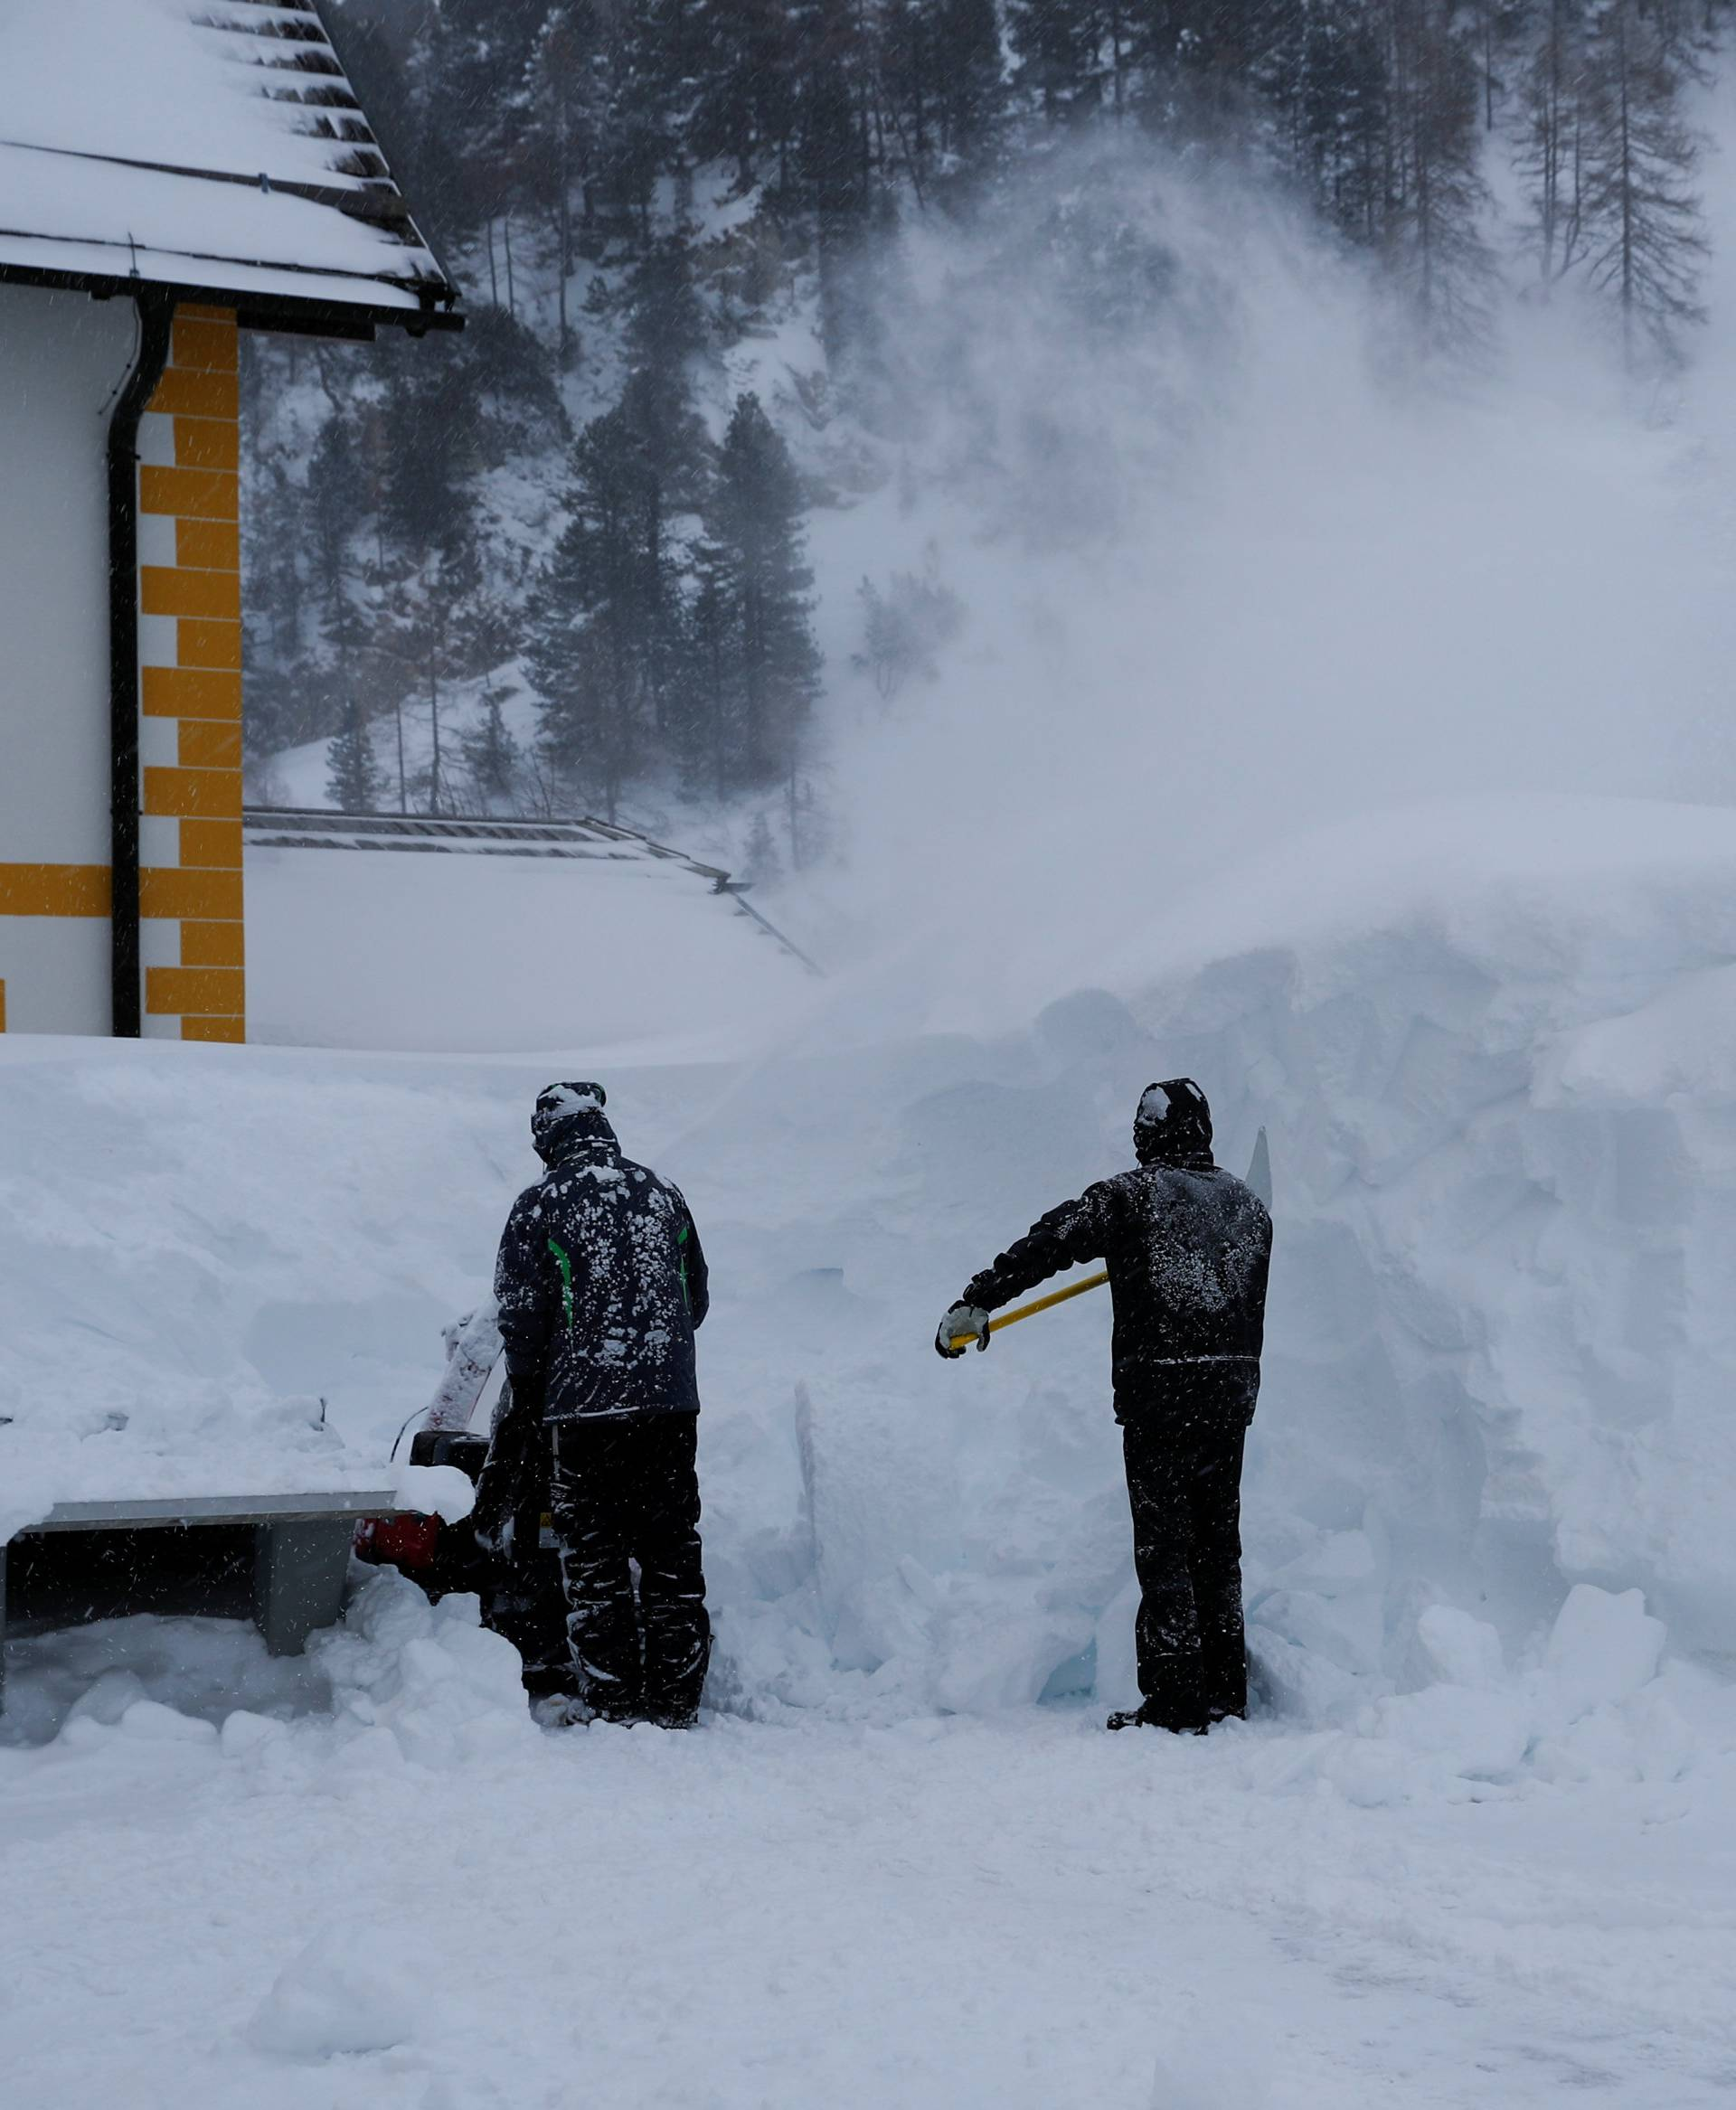 FILE PHOTO: Two workers remove snow after a blizzard in the Austrian Alpine ski resort of Obertauern